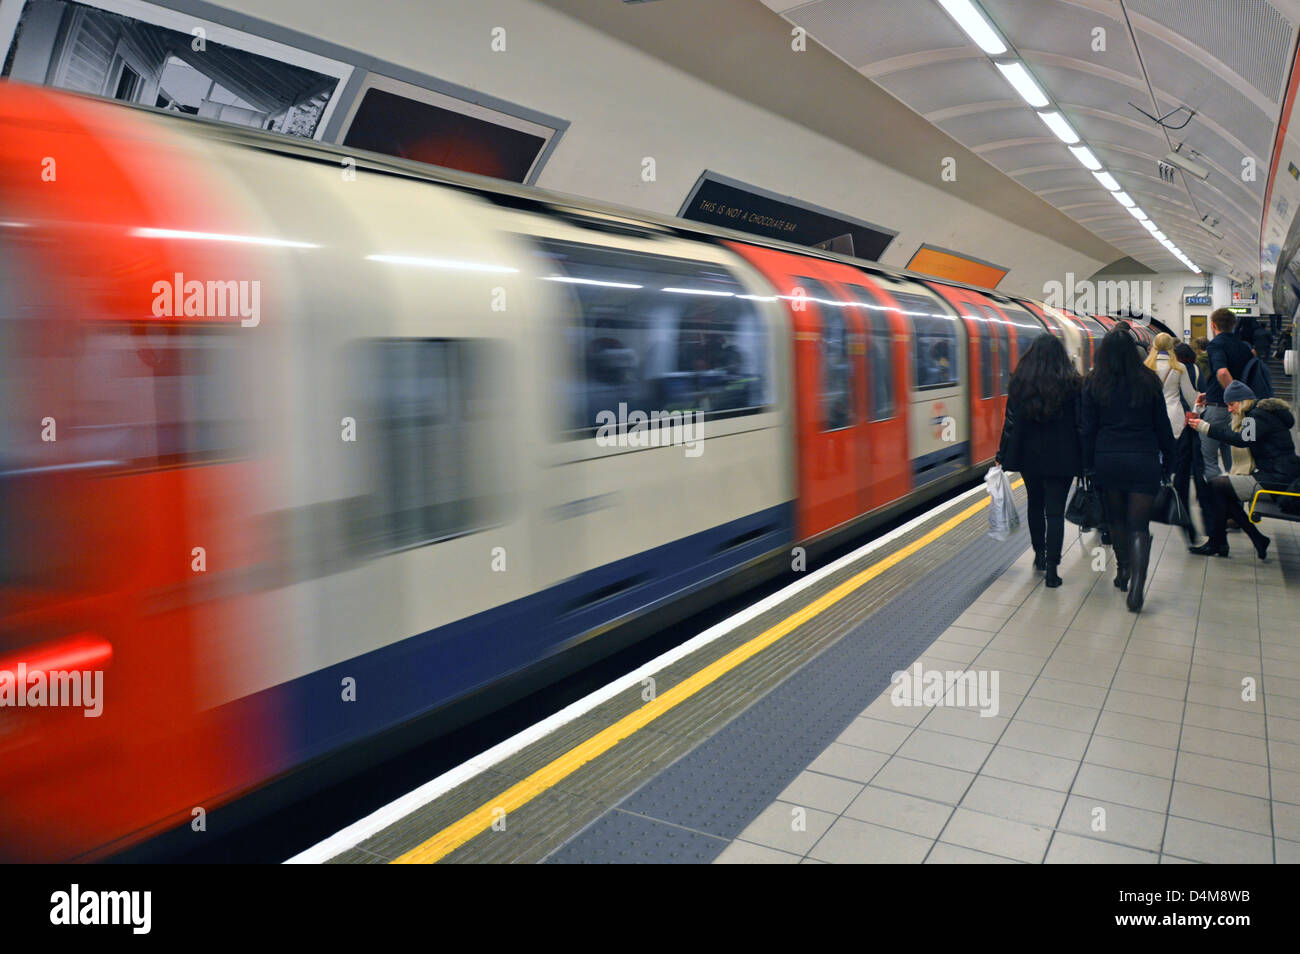 London Underground Central Line tube train departing train station people on platform with motion blur Shepherds - Stock Image